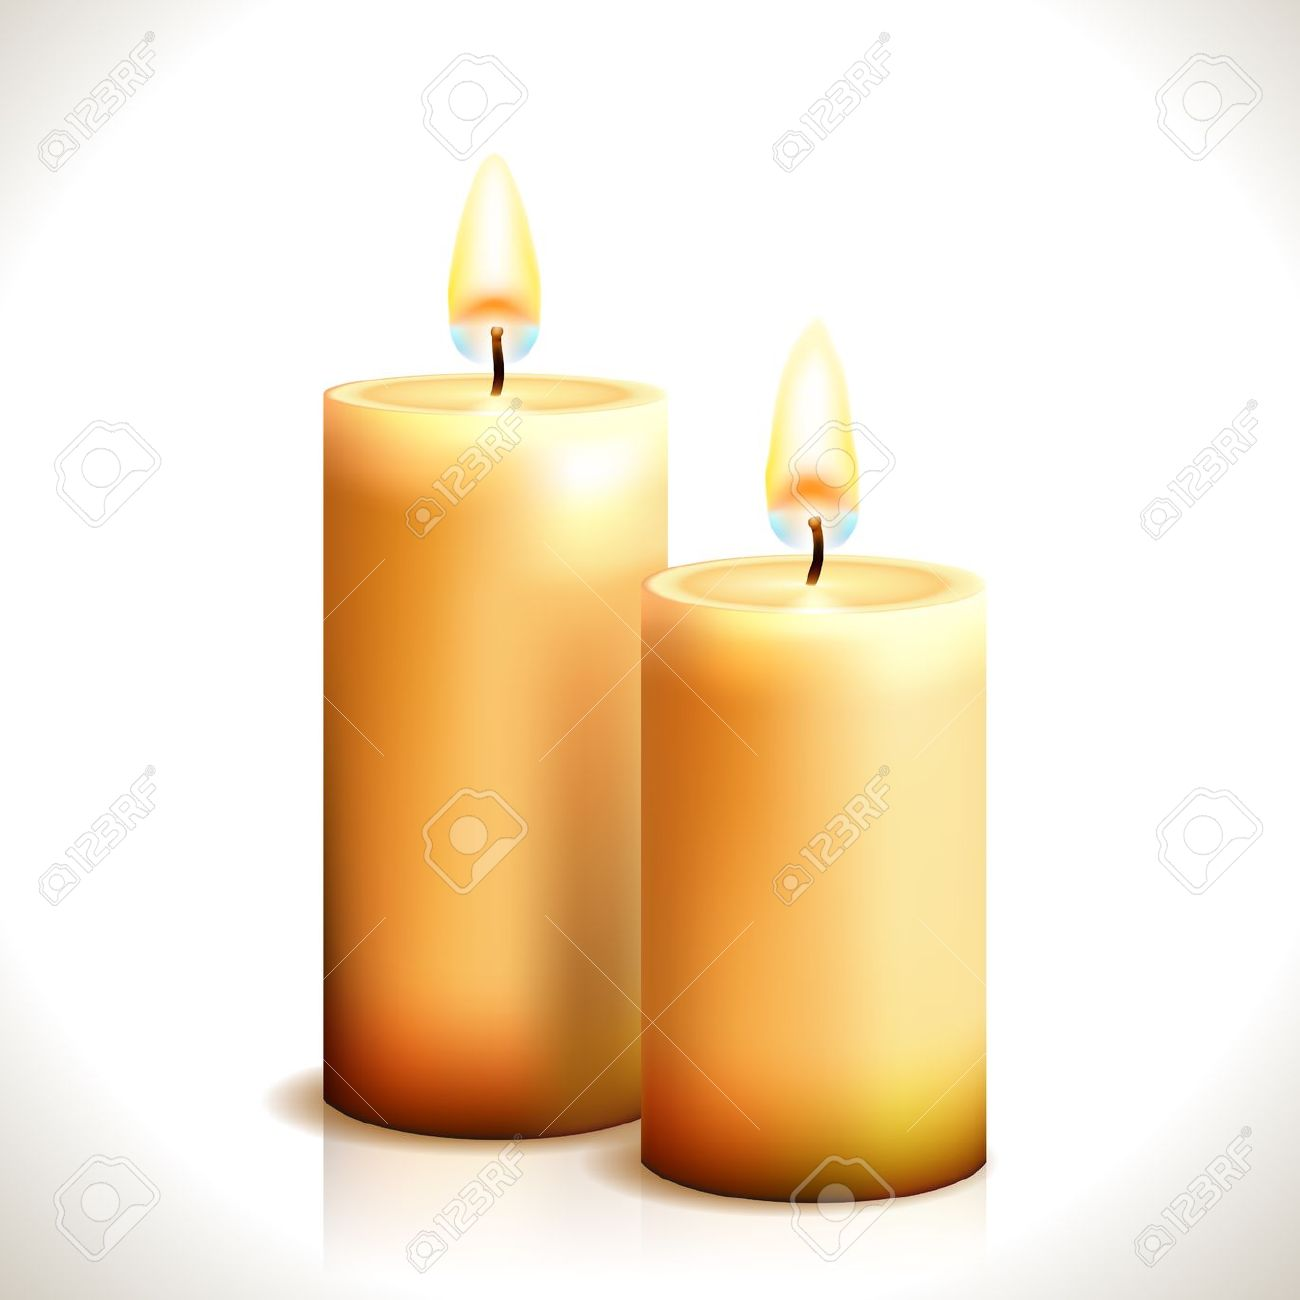 1300x1300 Melting Candle Clipart Church Candle